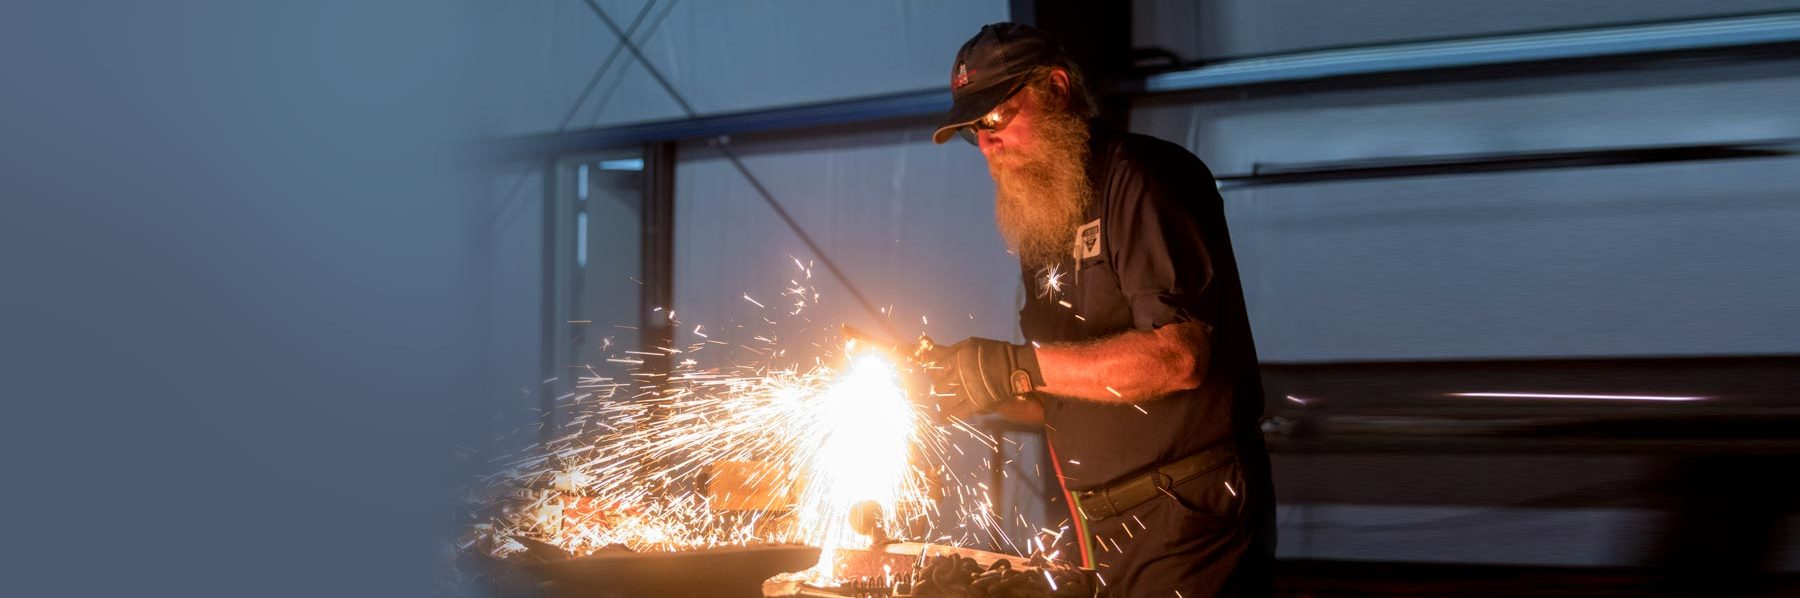 Emporia small business owner Bill Cheever welding in his workshop